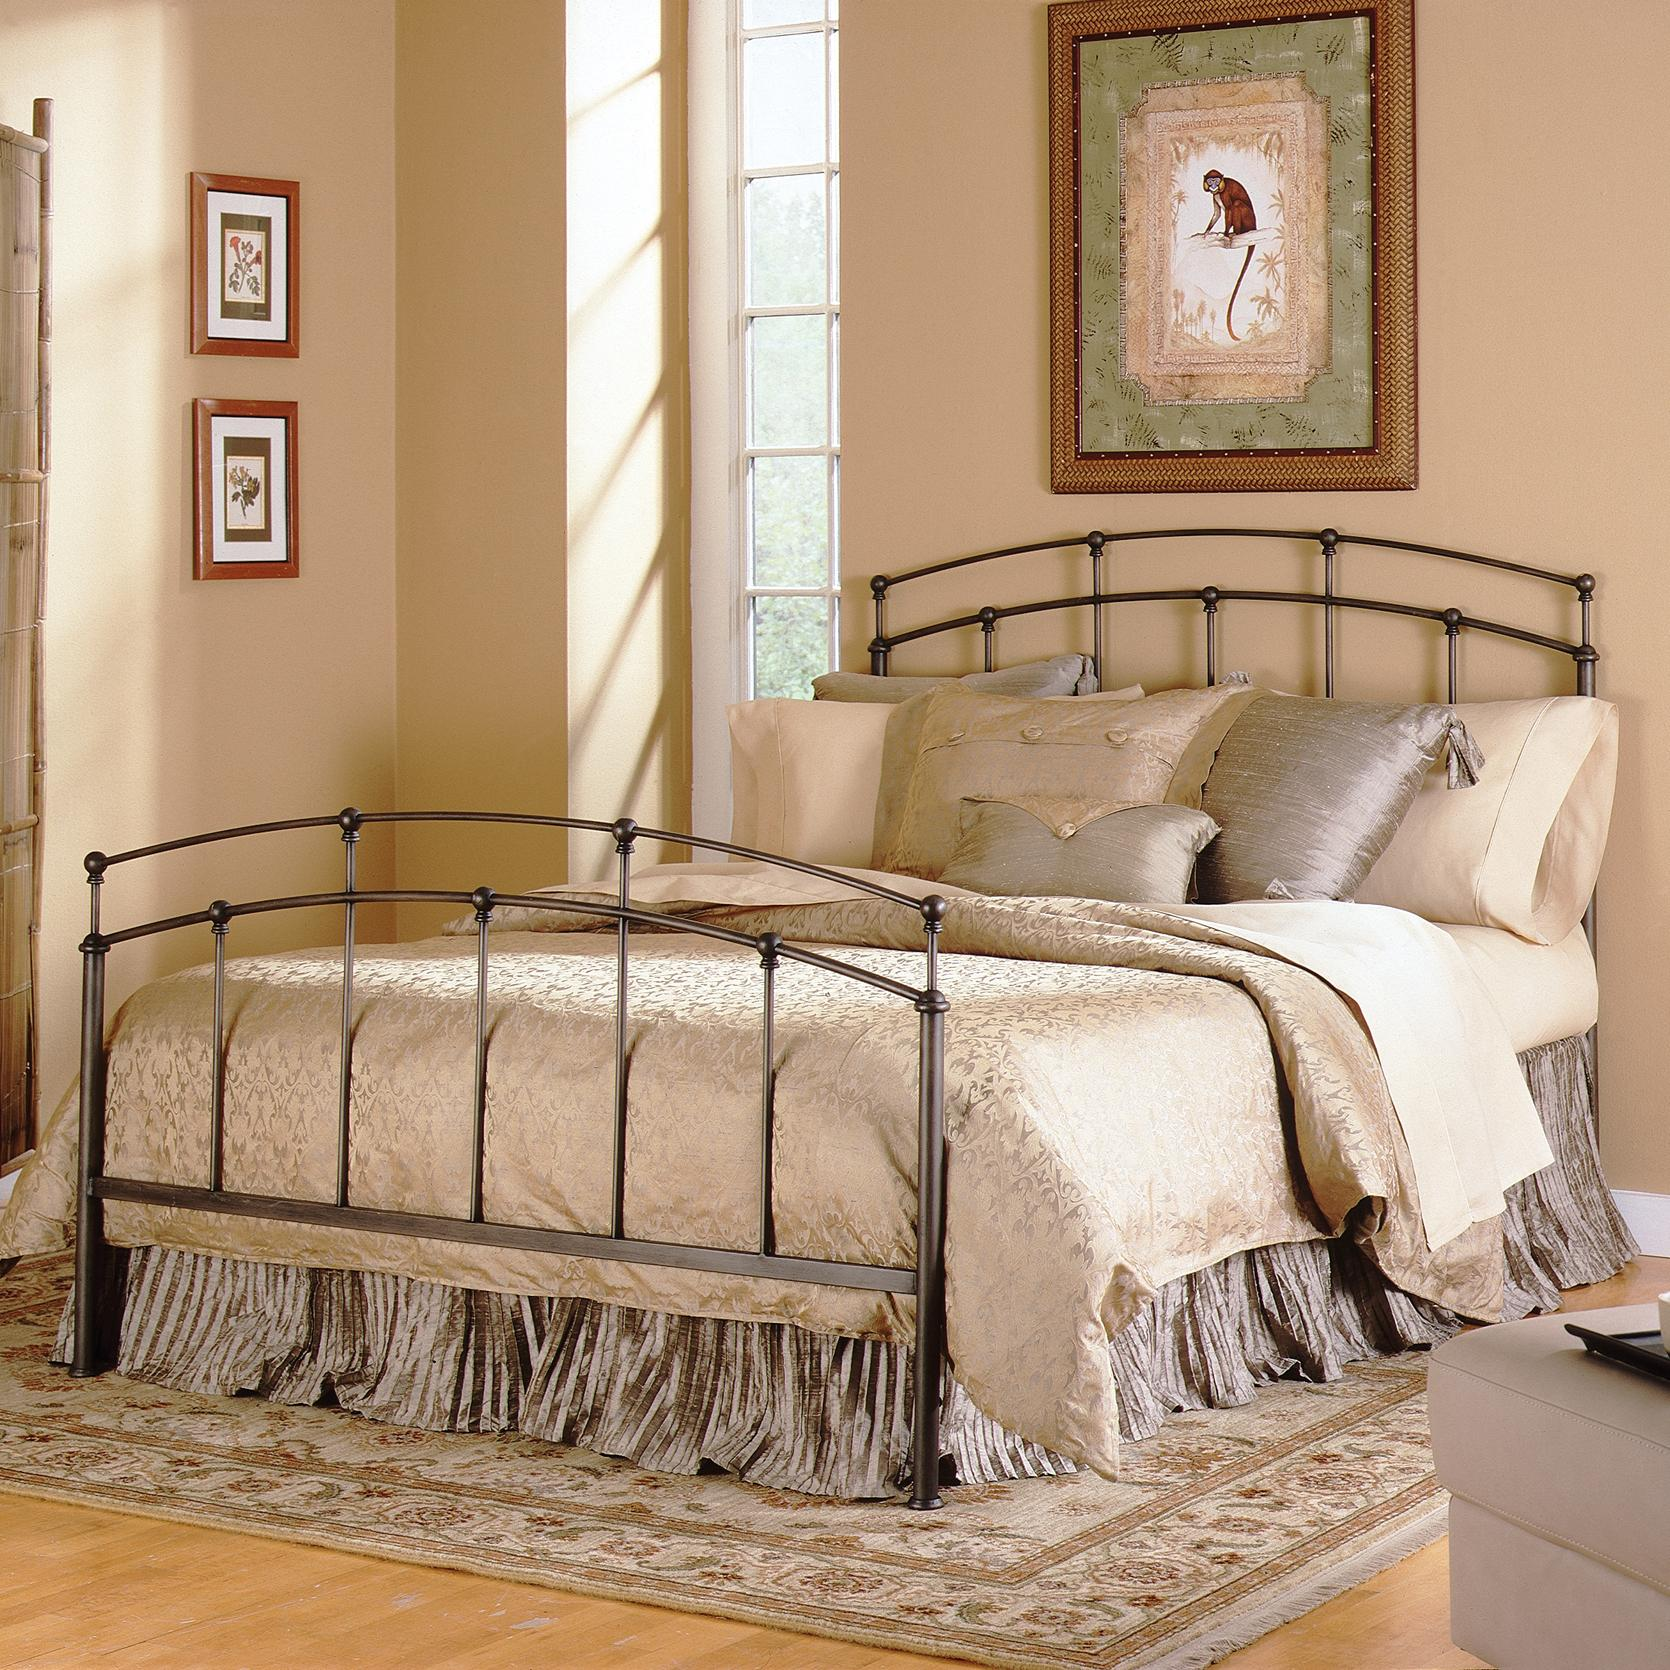 Fashion Bed Group Metal Beds Queen Fenton Duo Panel